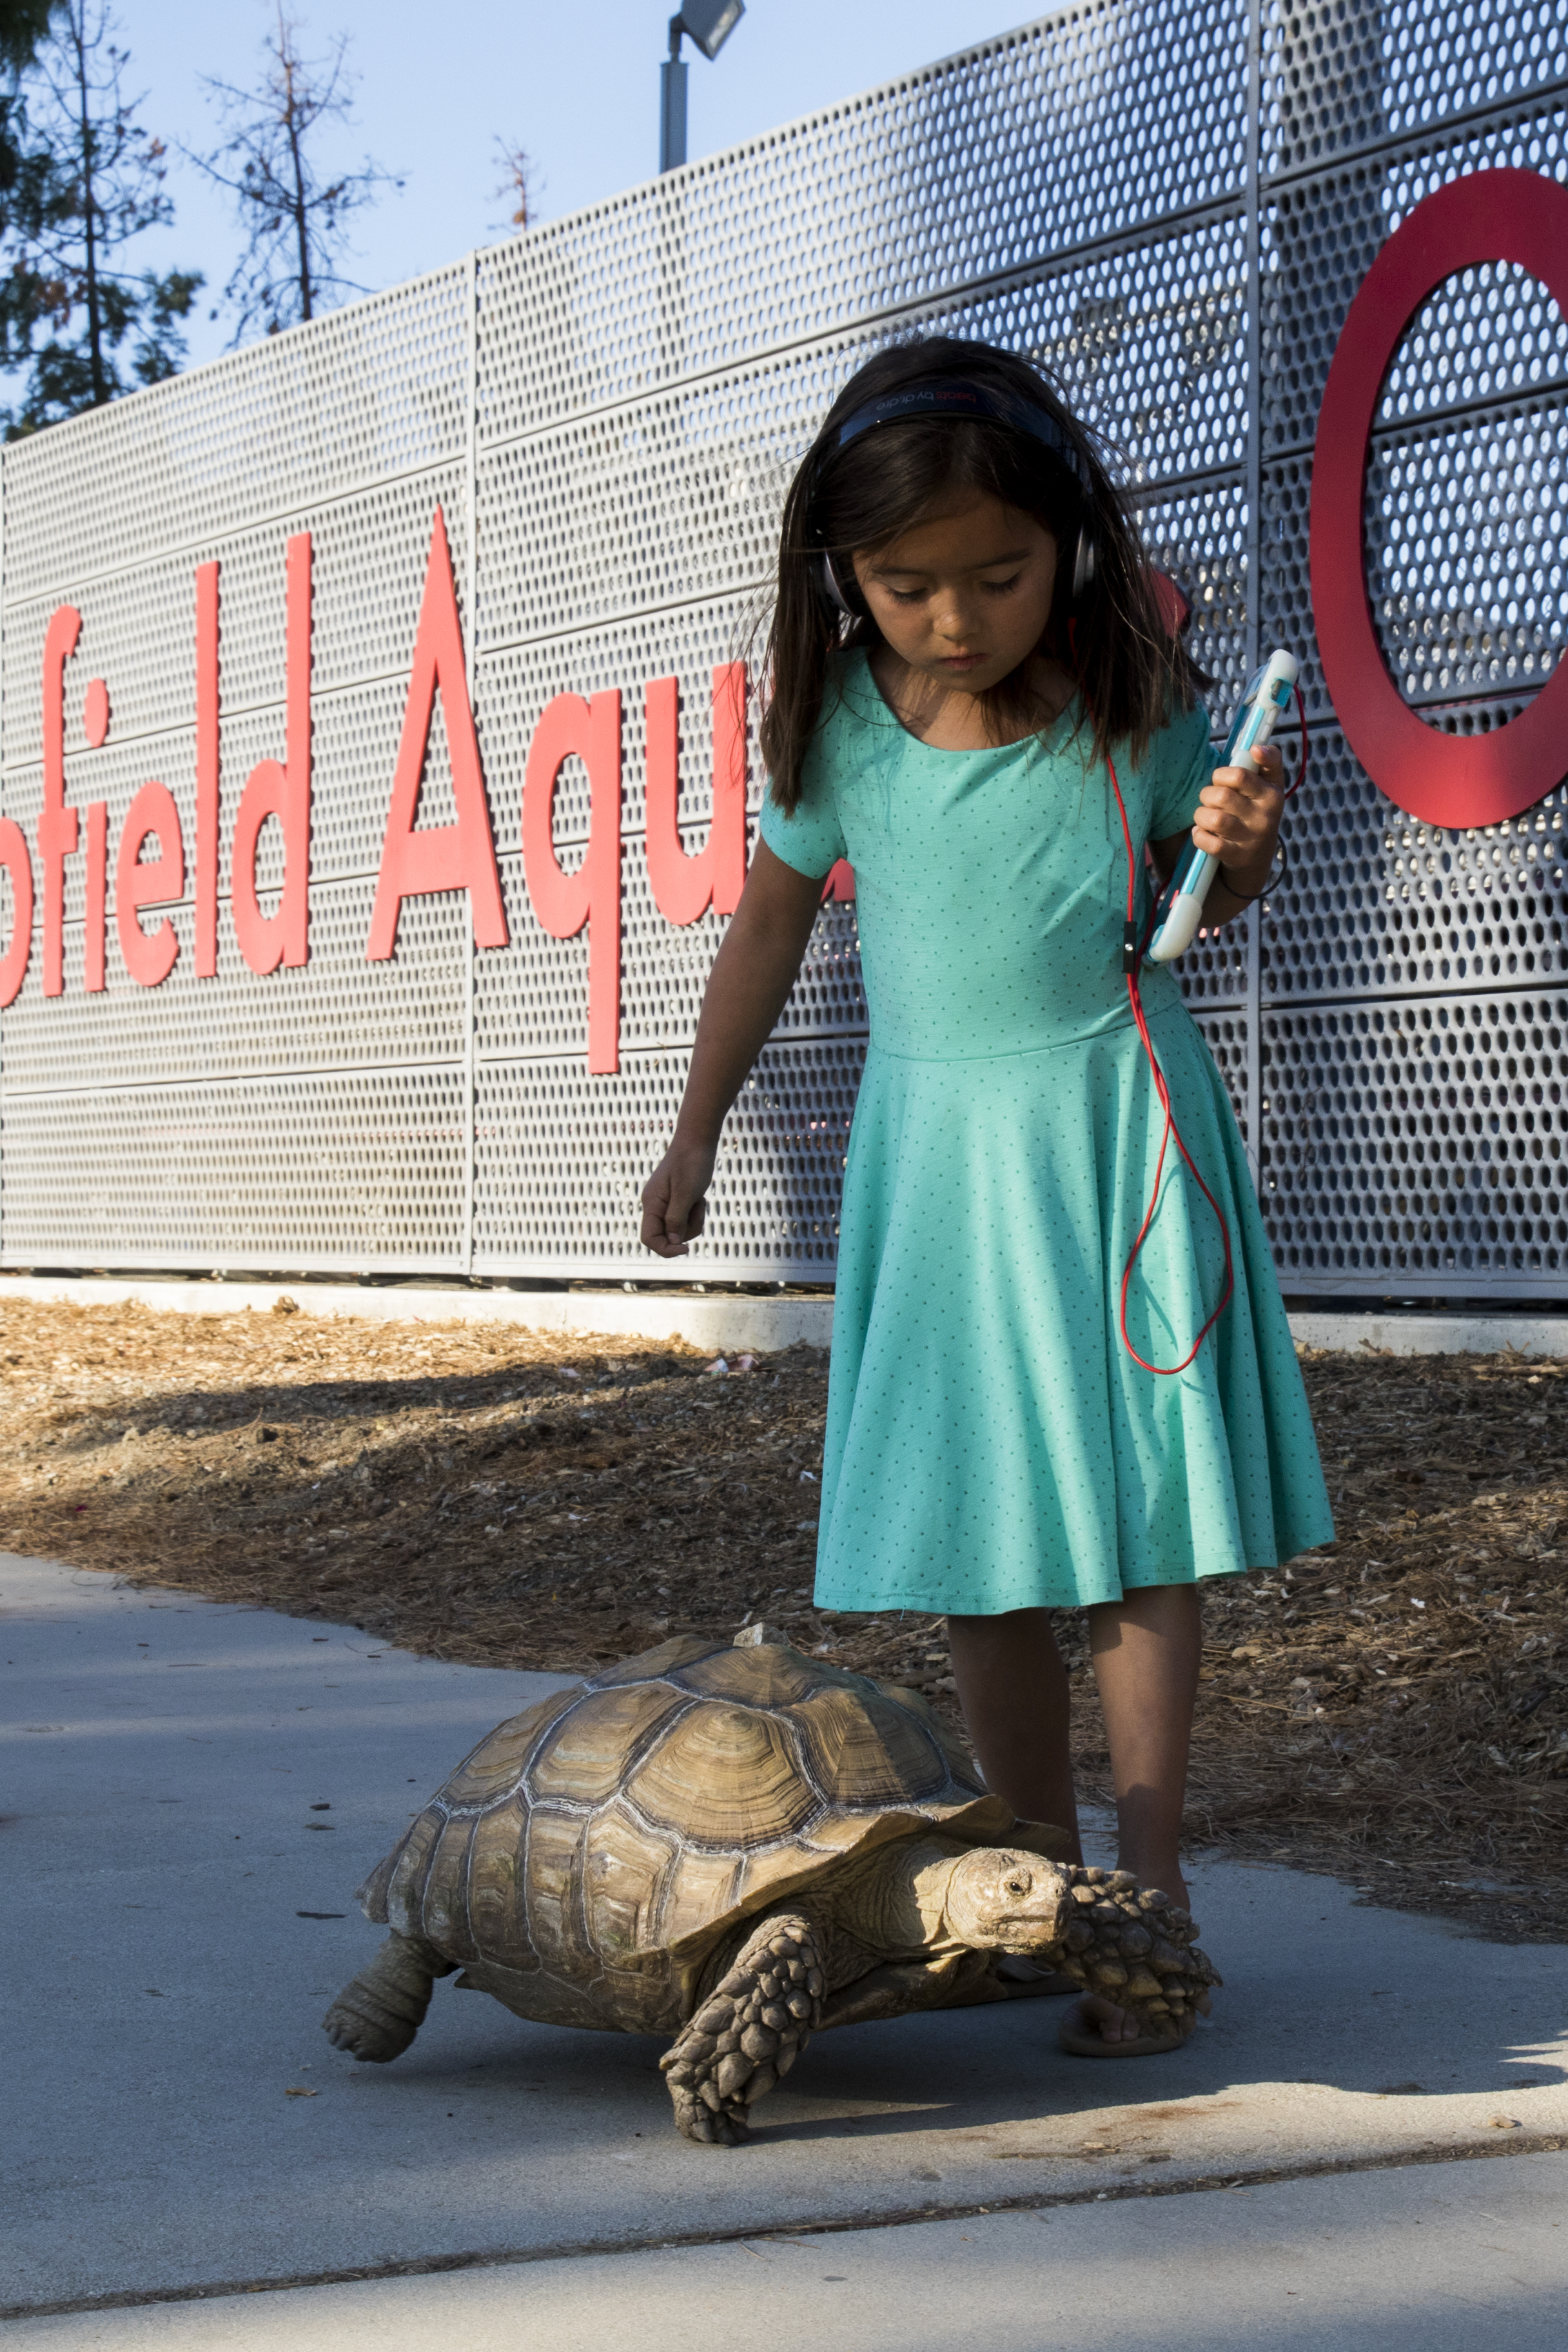 The daugher of the D'Amore family keeps a watchful eye over their family tortoise, Betty at their evacuation center at Pierce College in Woodland Hills, California on November 9, 2018. The D'Amore family evacuated their home in Westlake at 2 AM the previous night. (Zane Meyer-Thornton/Corsair Photo)